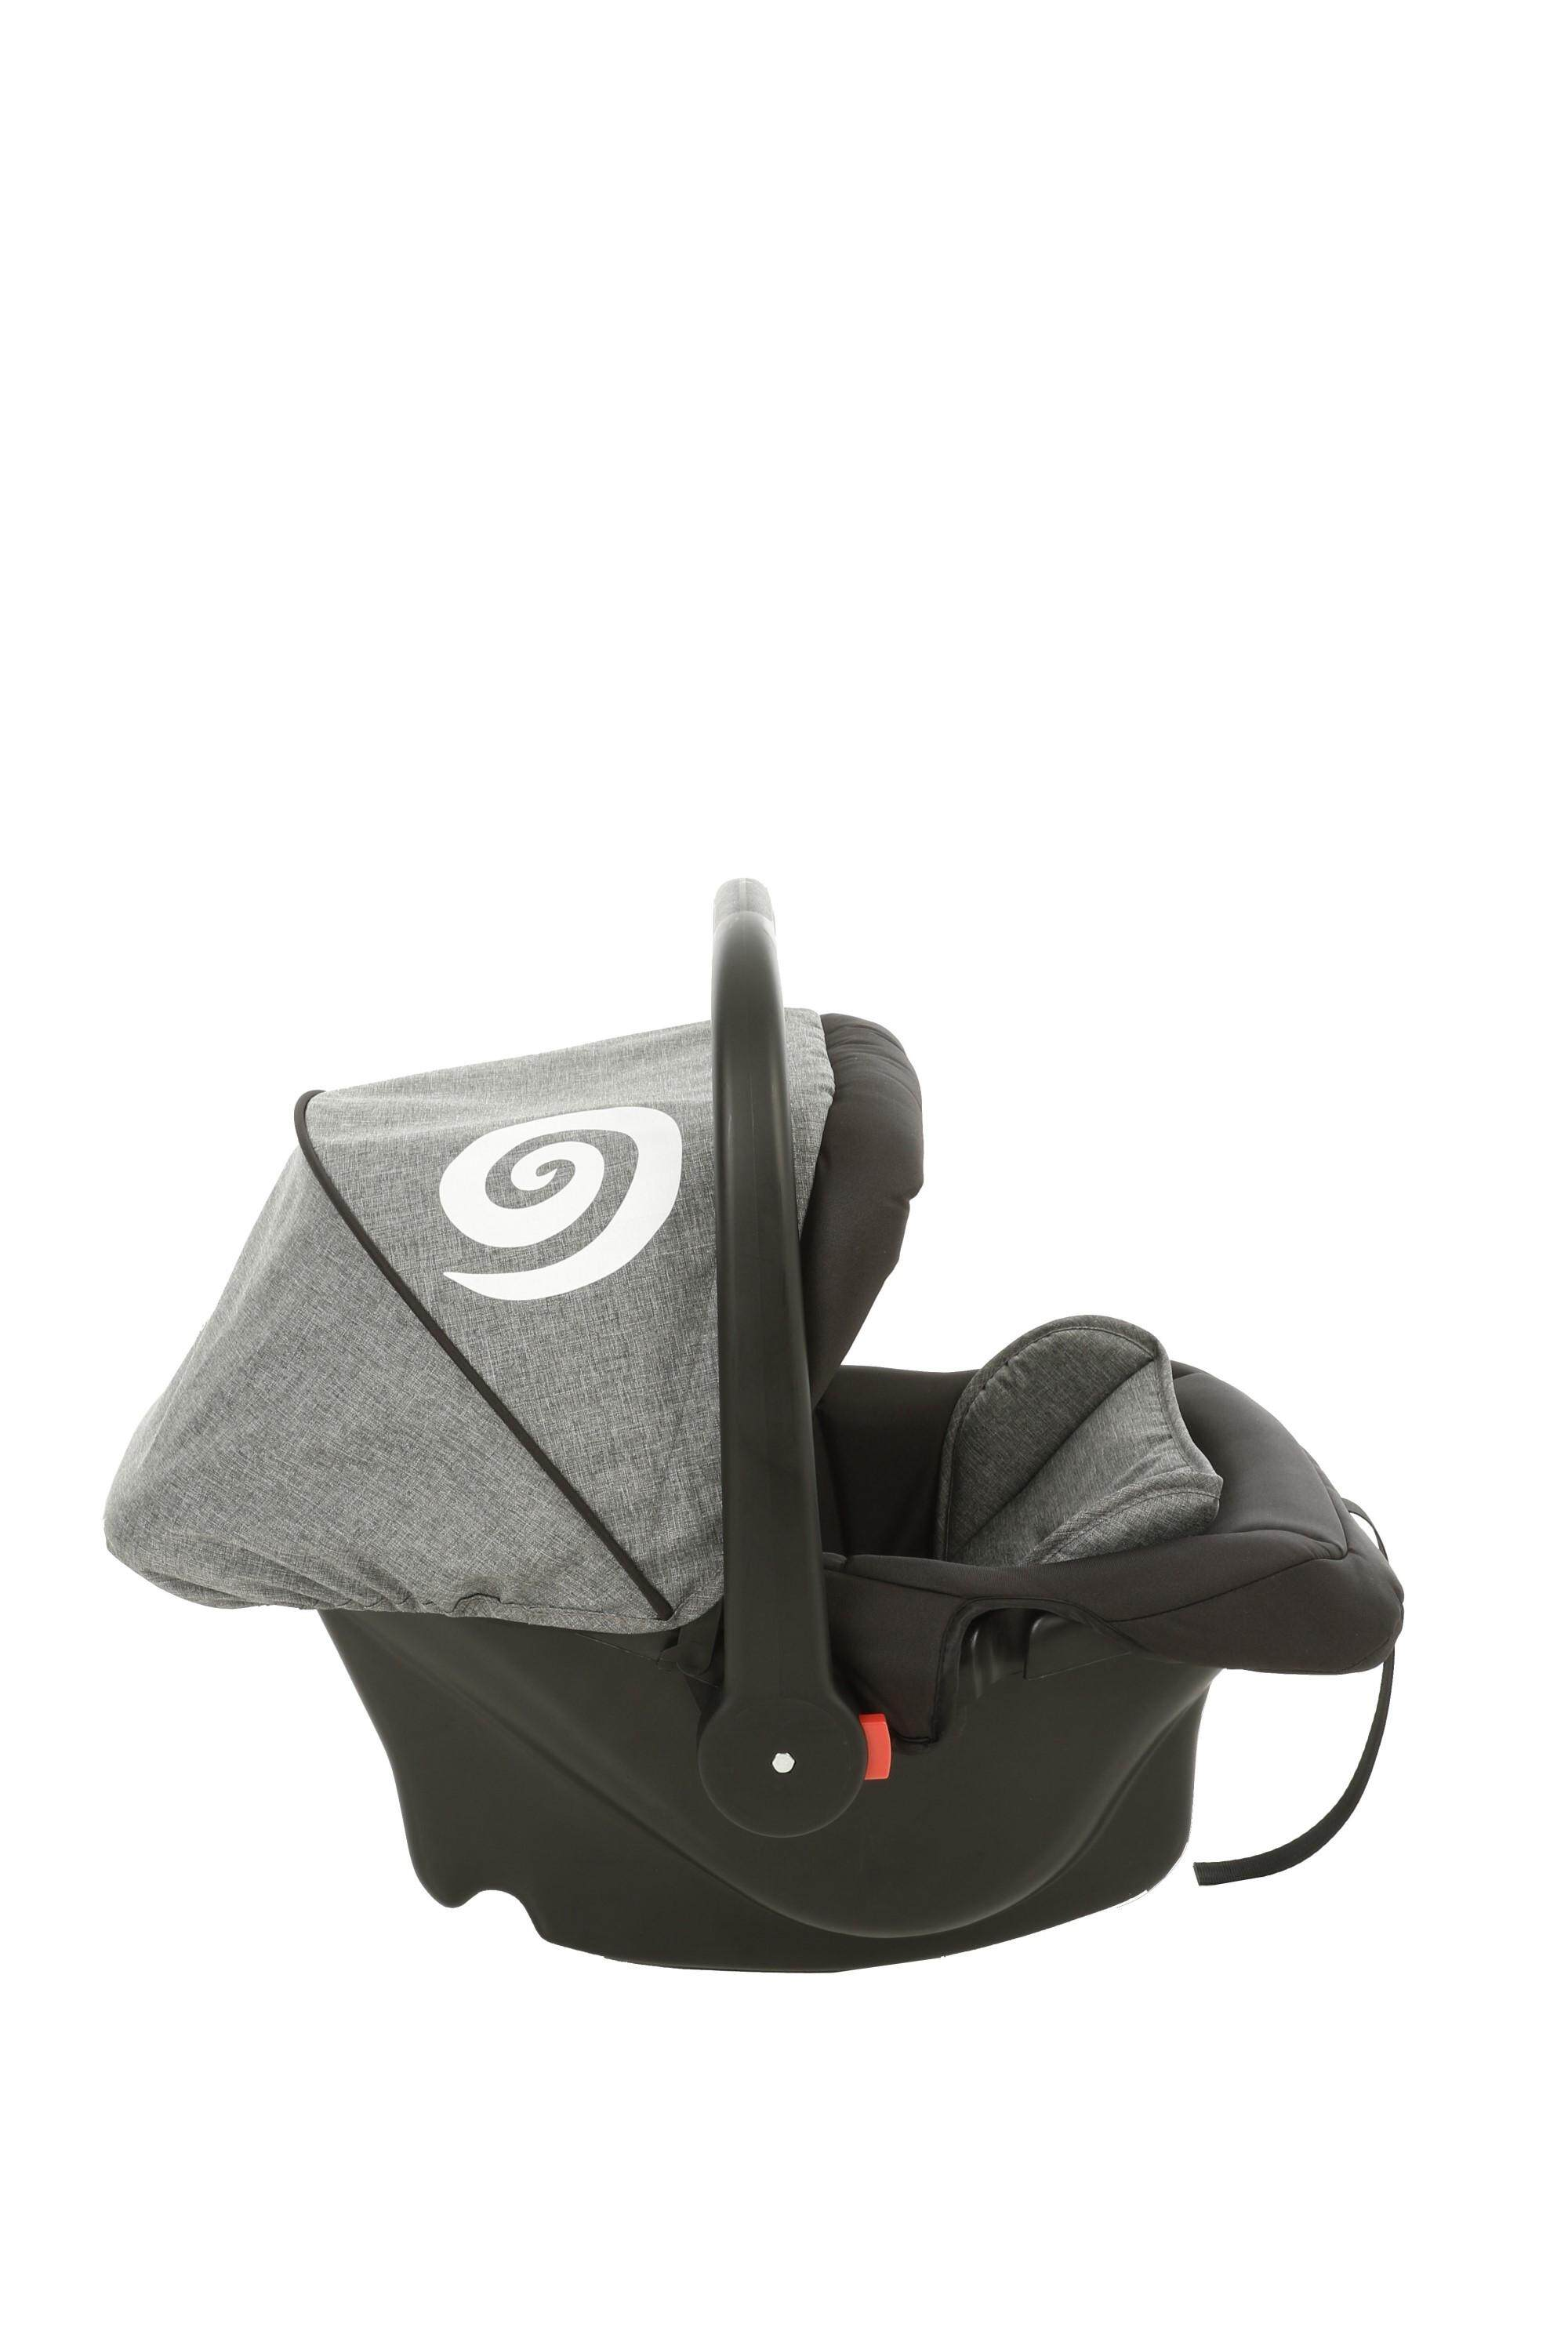 Akarana Baby Koru Car Seat Carrier Koru Grey